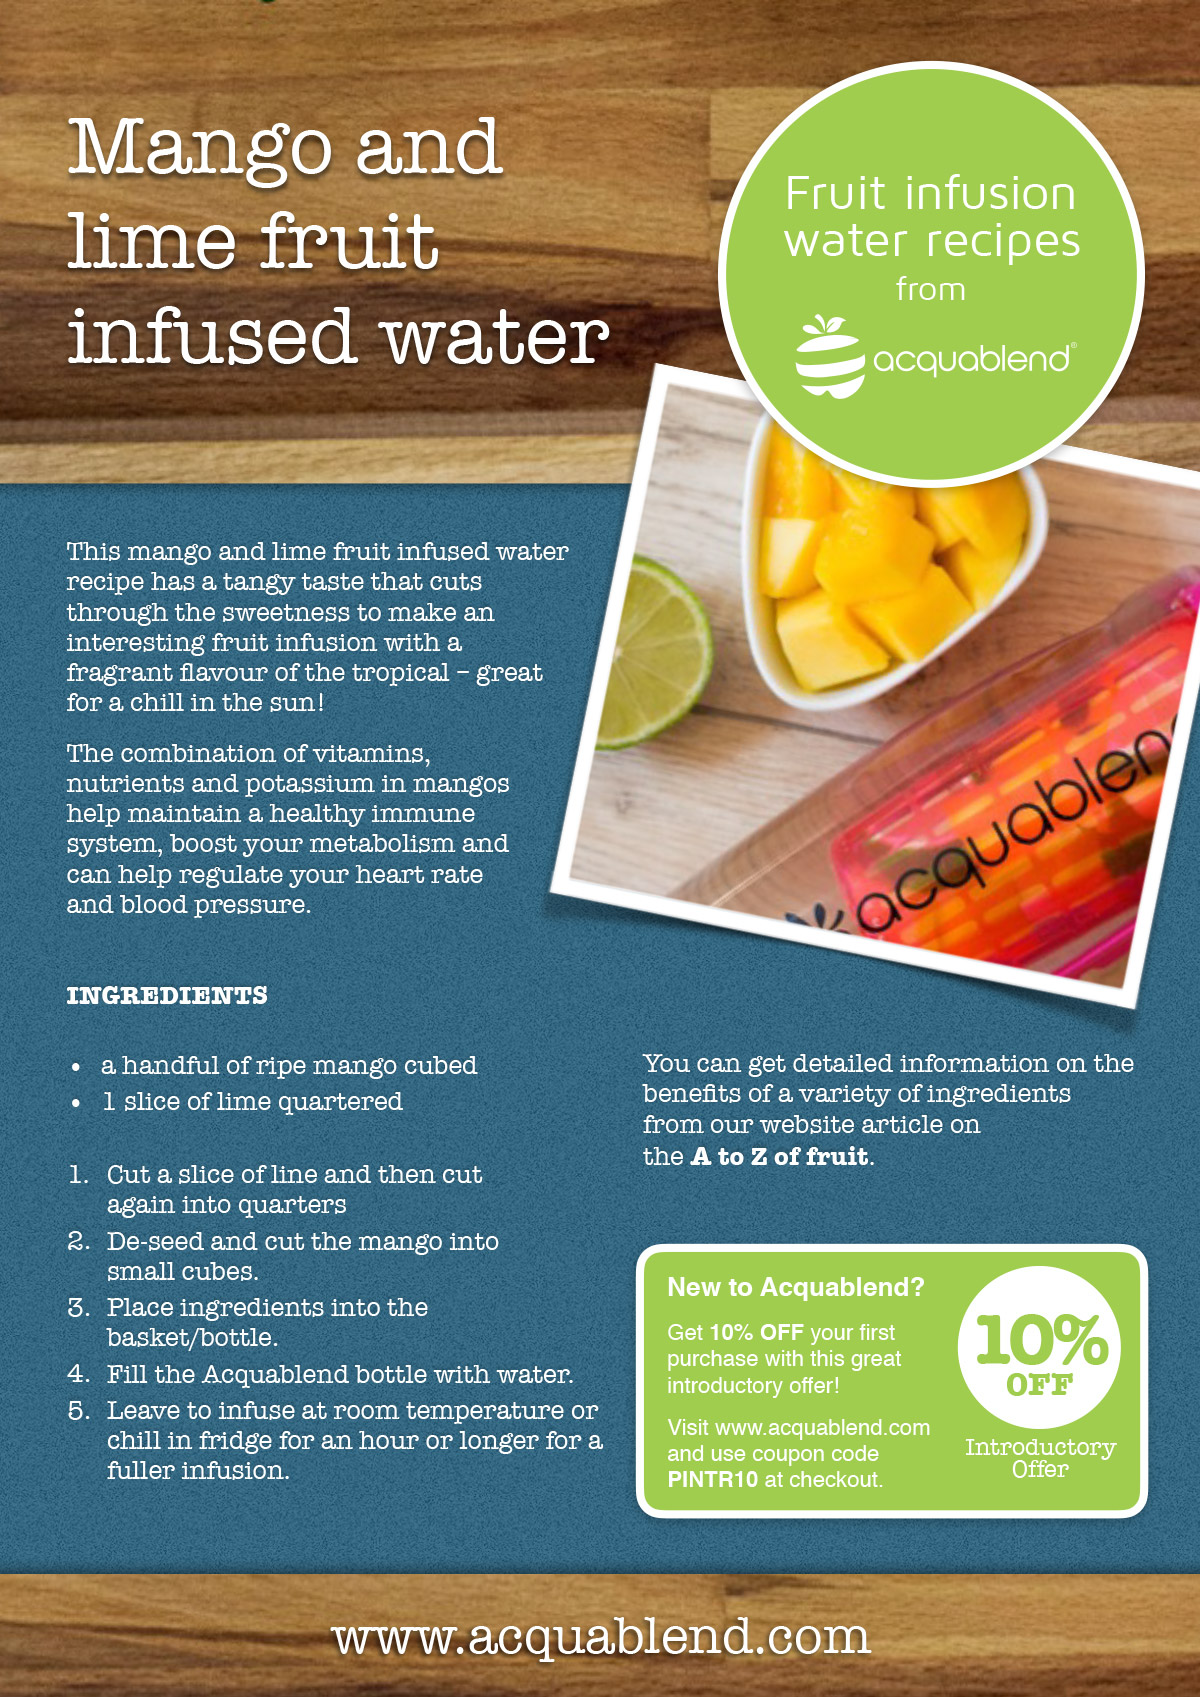 Mango and lime fruit infused water recipe.